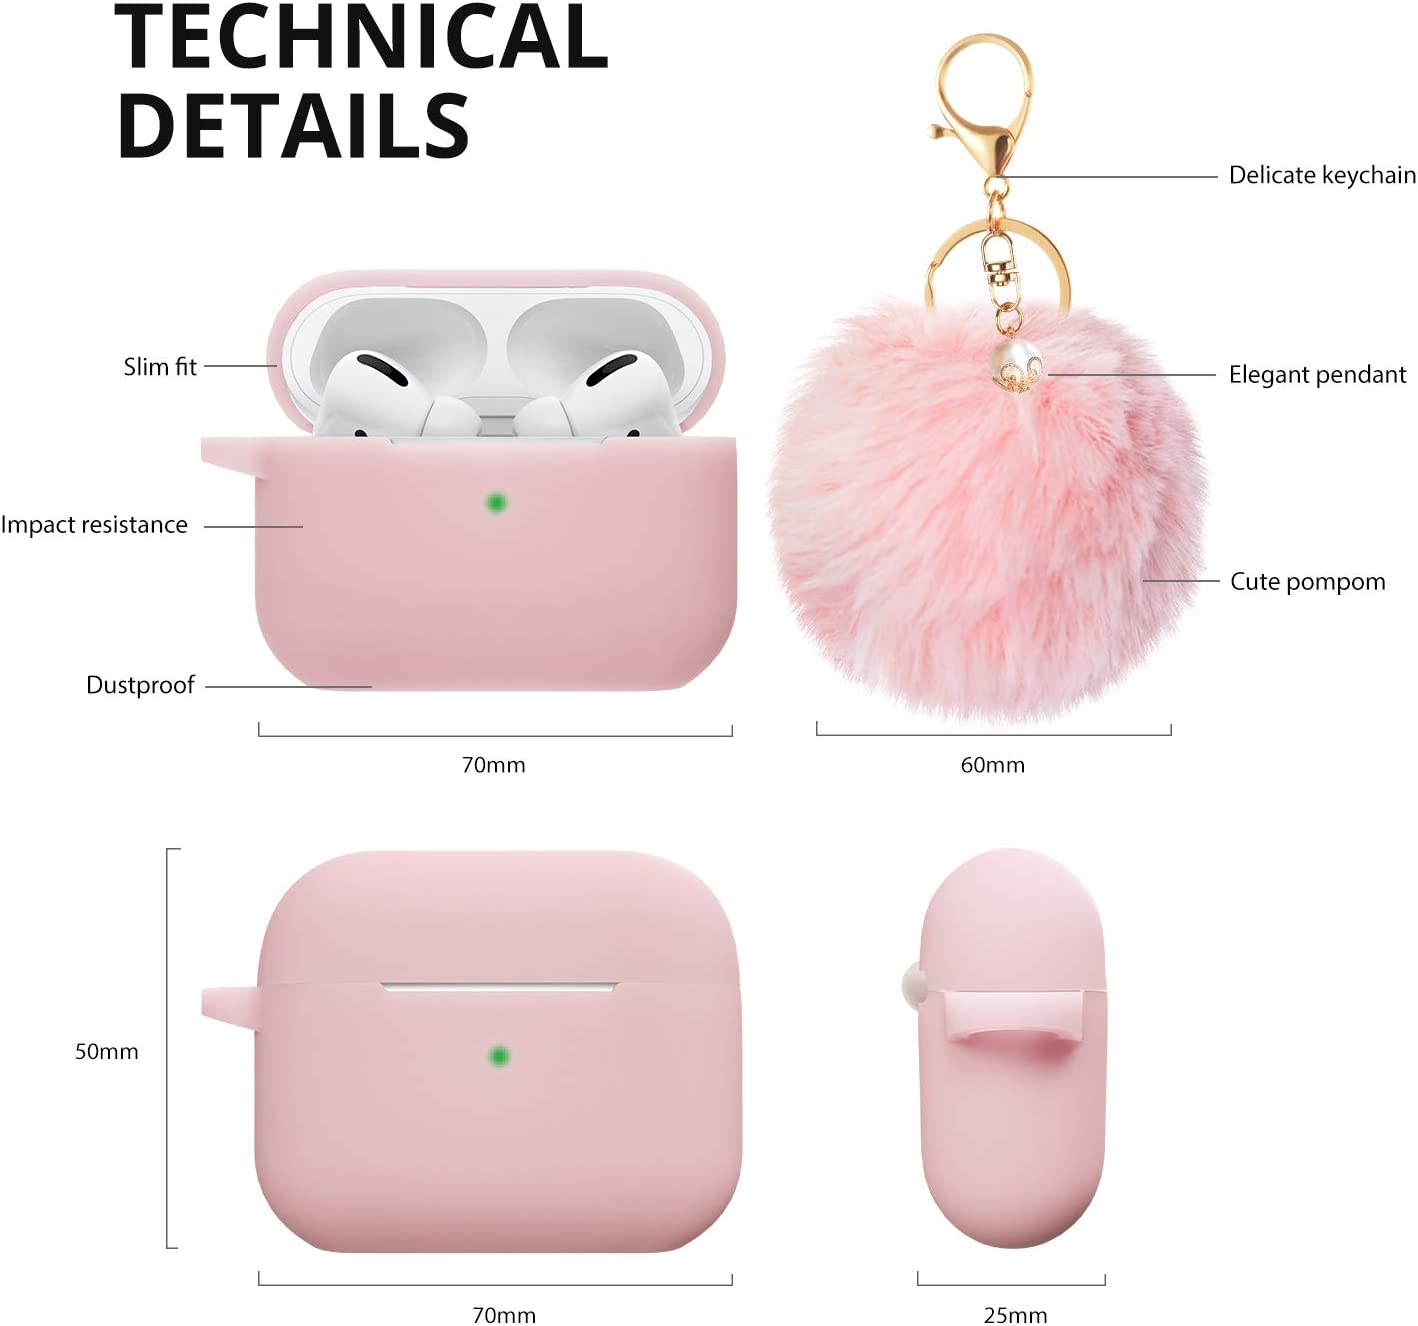 Gray BLUEWIND Newest Cute Air Pods Silicone Case Airpods Accessories Keychain//Pom Pom//Strap Airpods Pro Case Cover 2019 Release Airpod Pro Protective Case for Apple Airpods Pro Charging Case